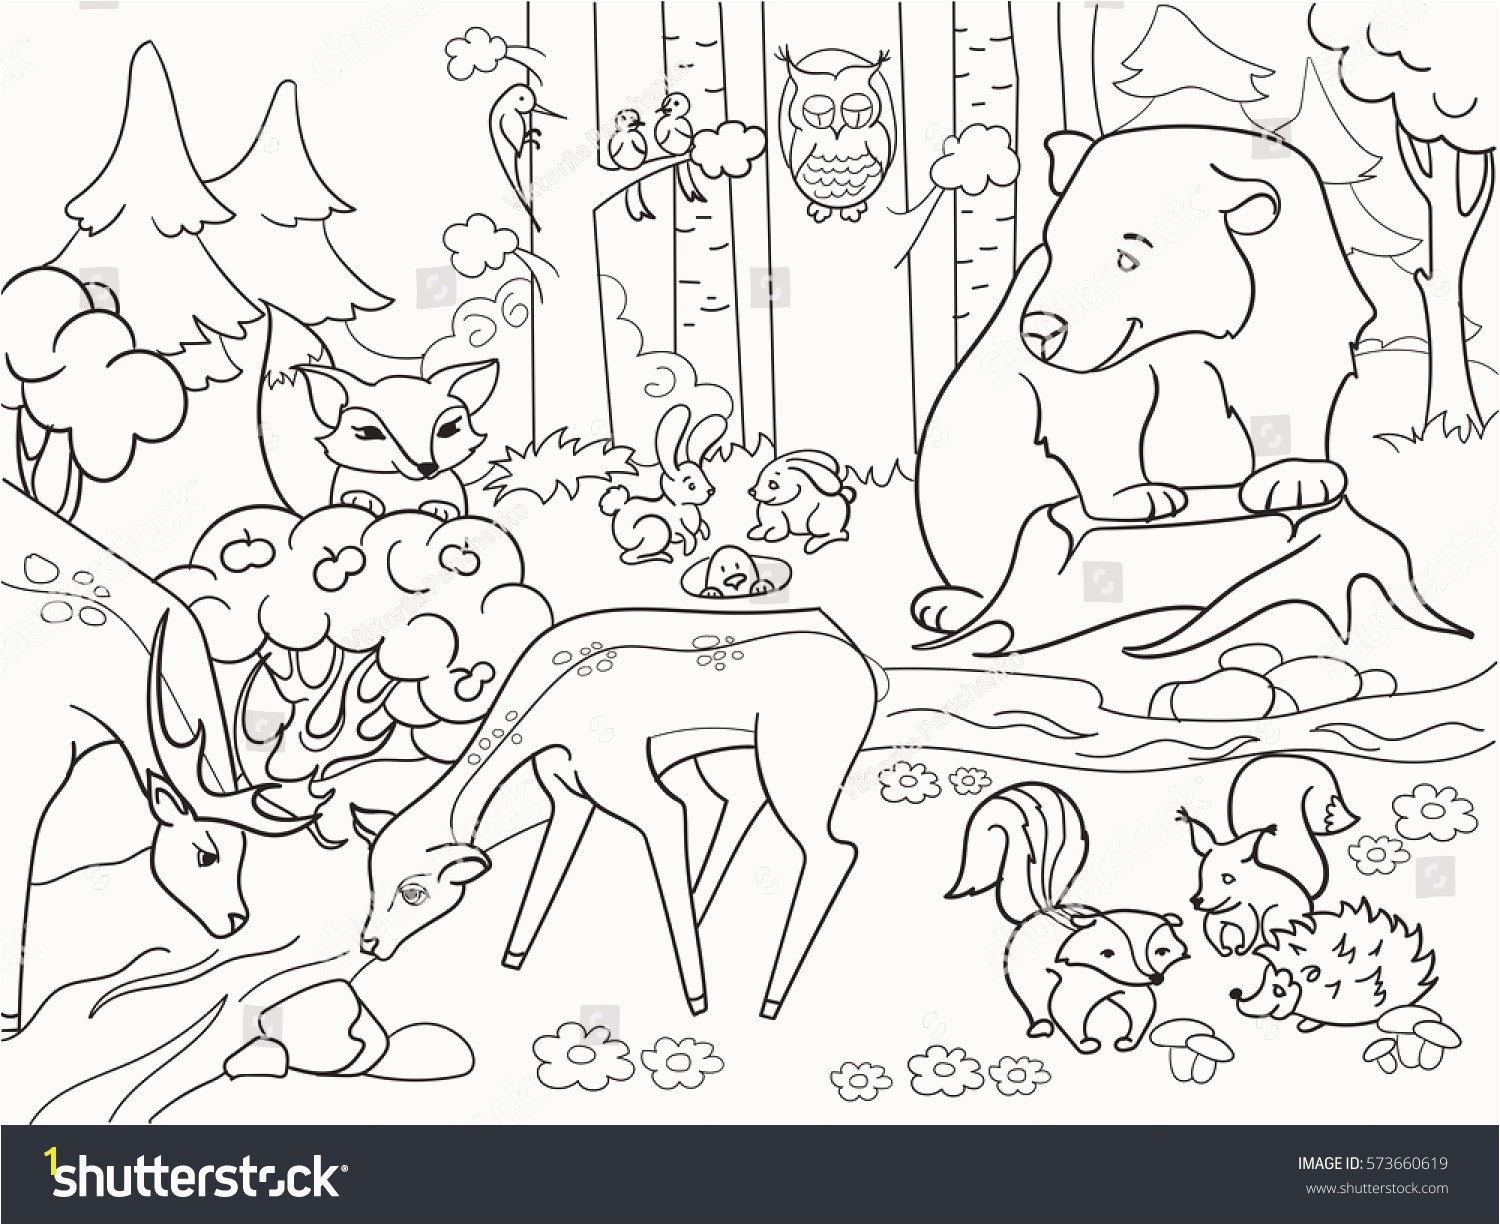 Weasel Coloring Pages Best forest Landscape Animals Coloring Book Adults Stock Vector Hd Weasel